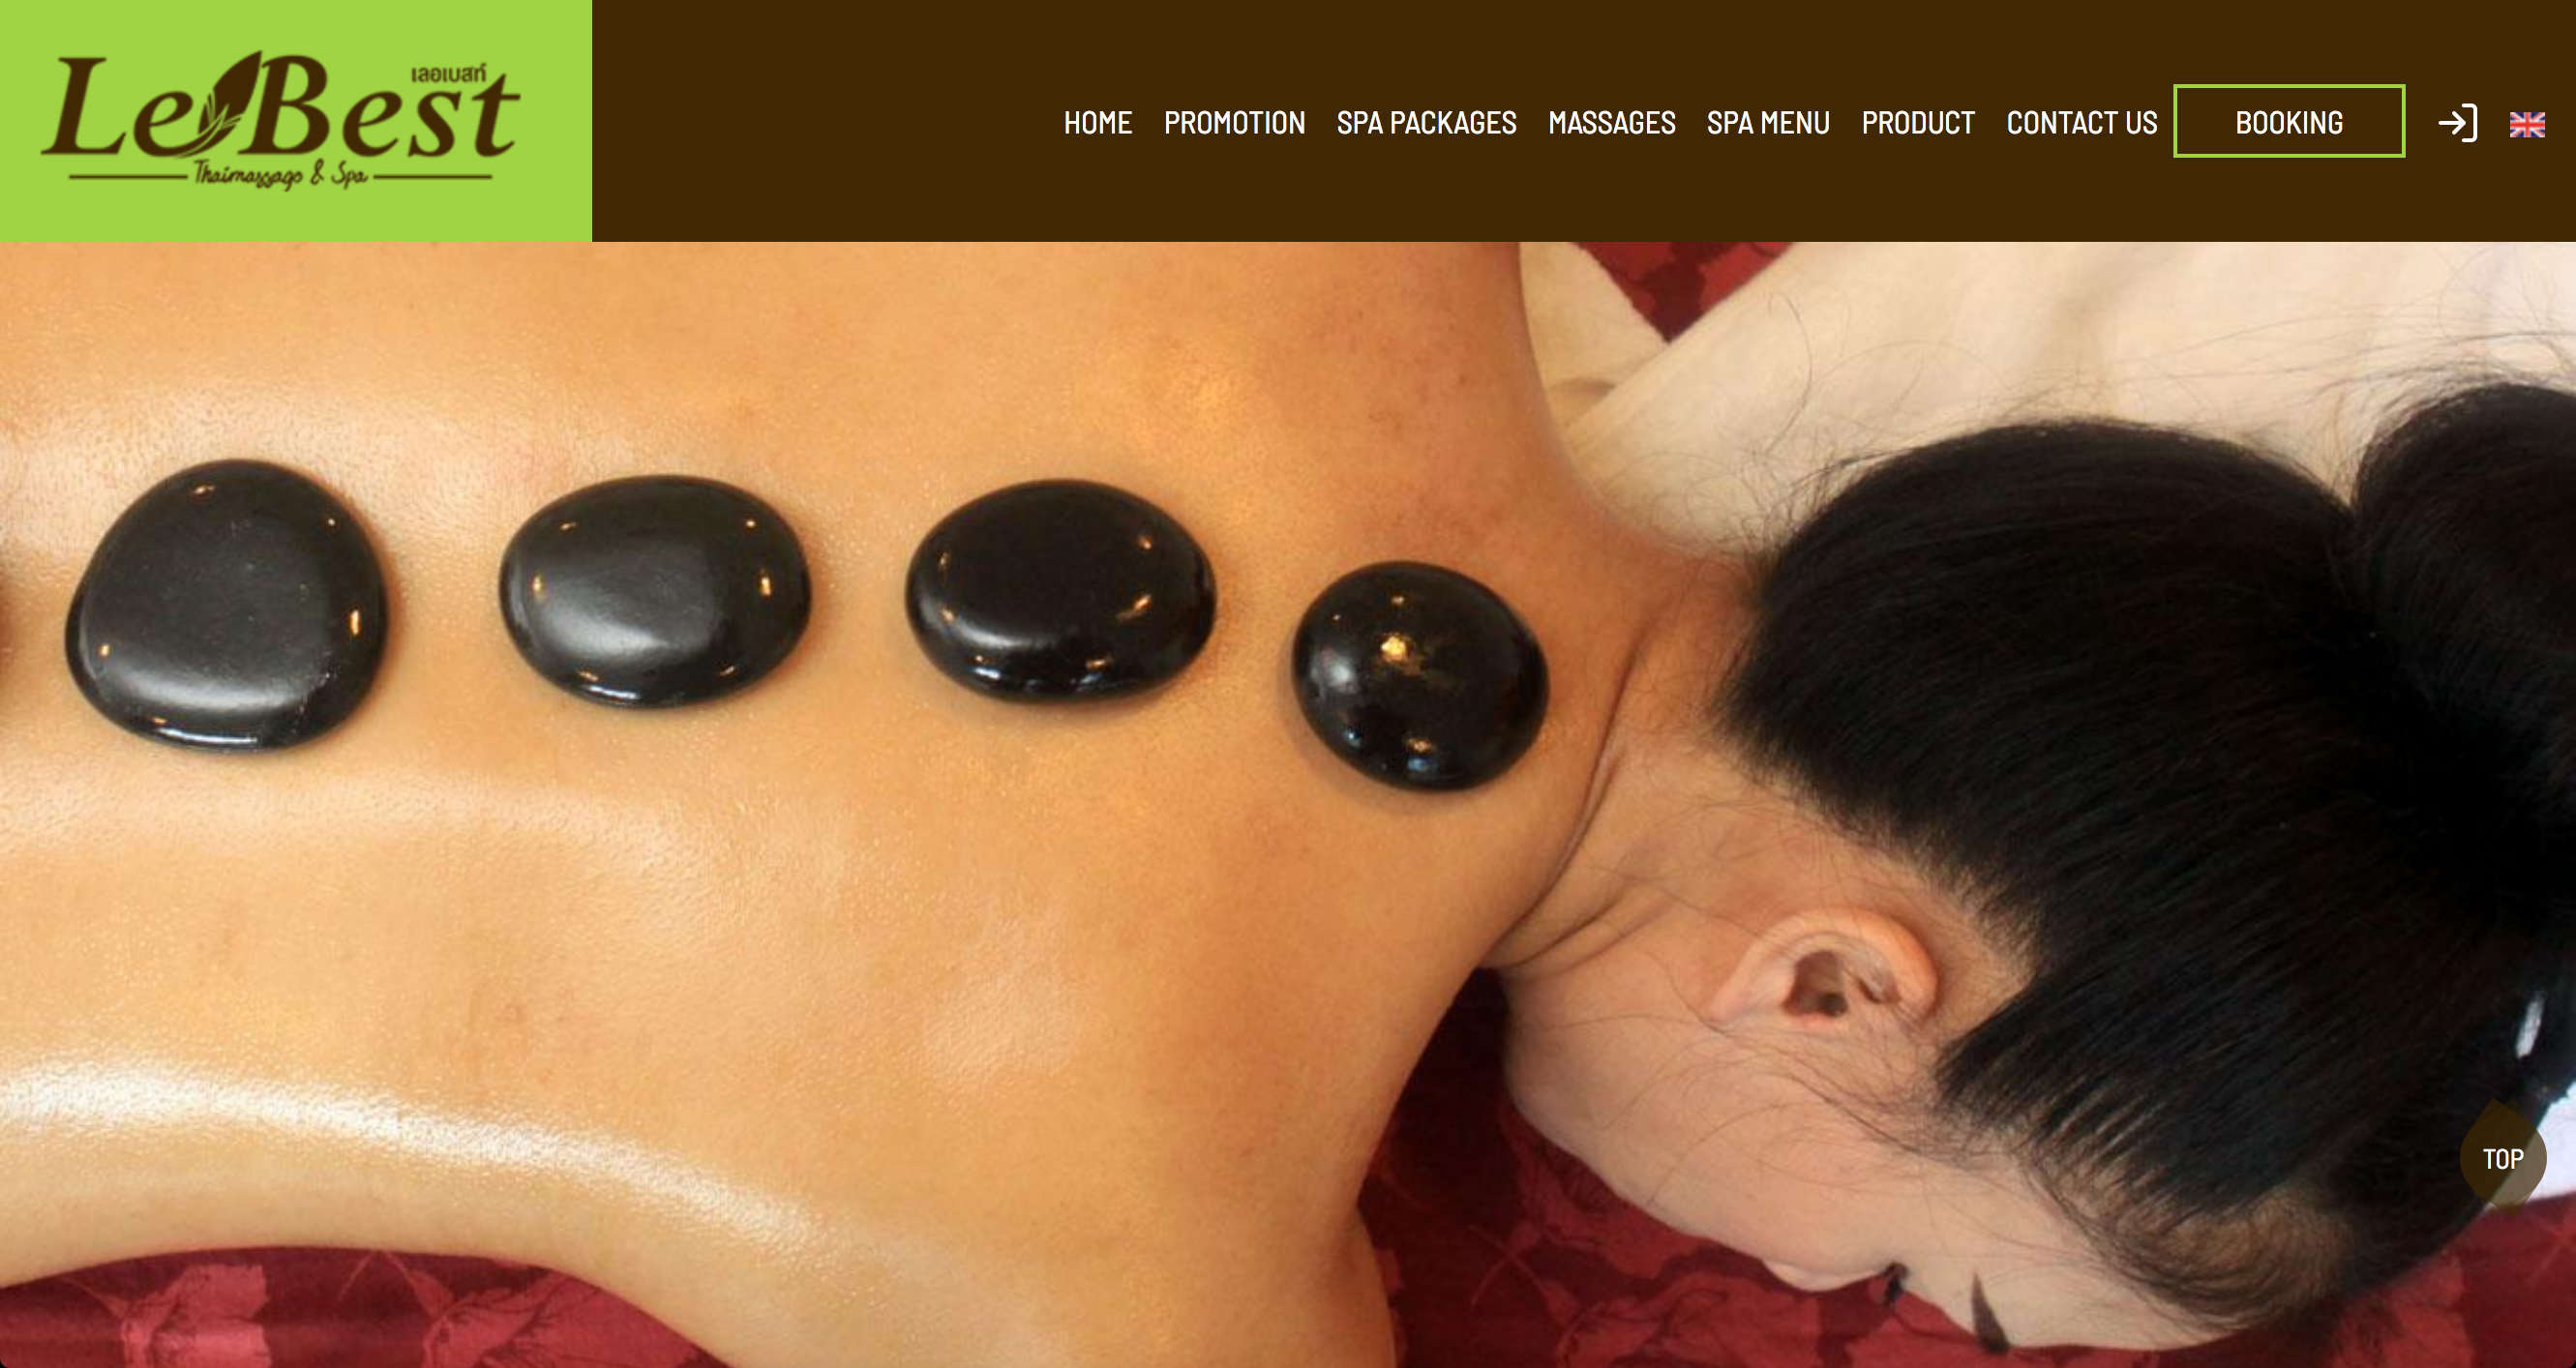 LE BEST THAI MASSAGE & SPA